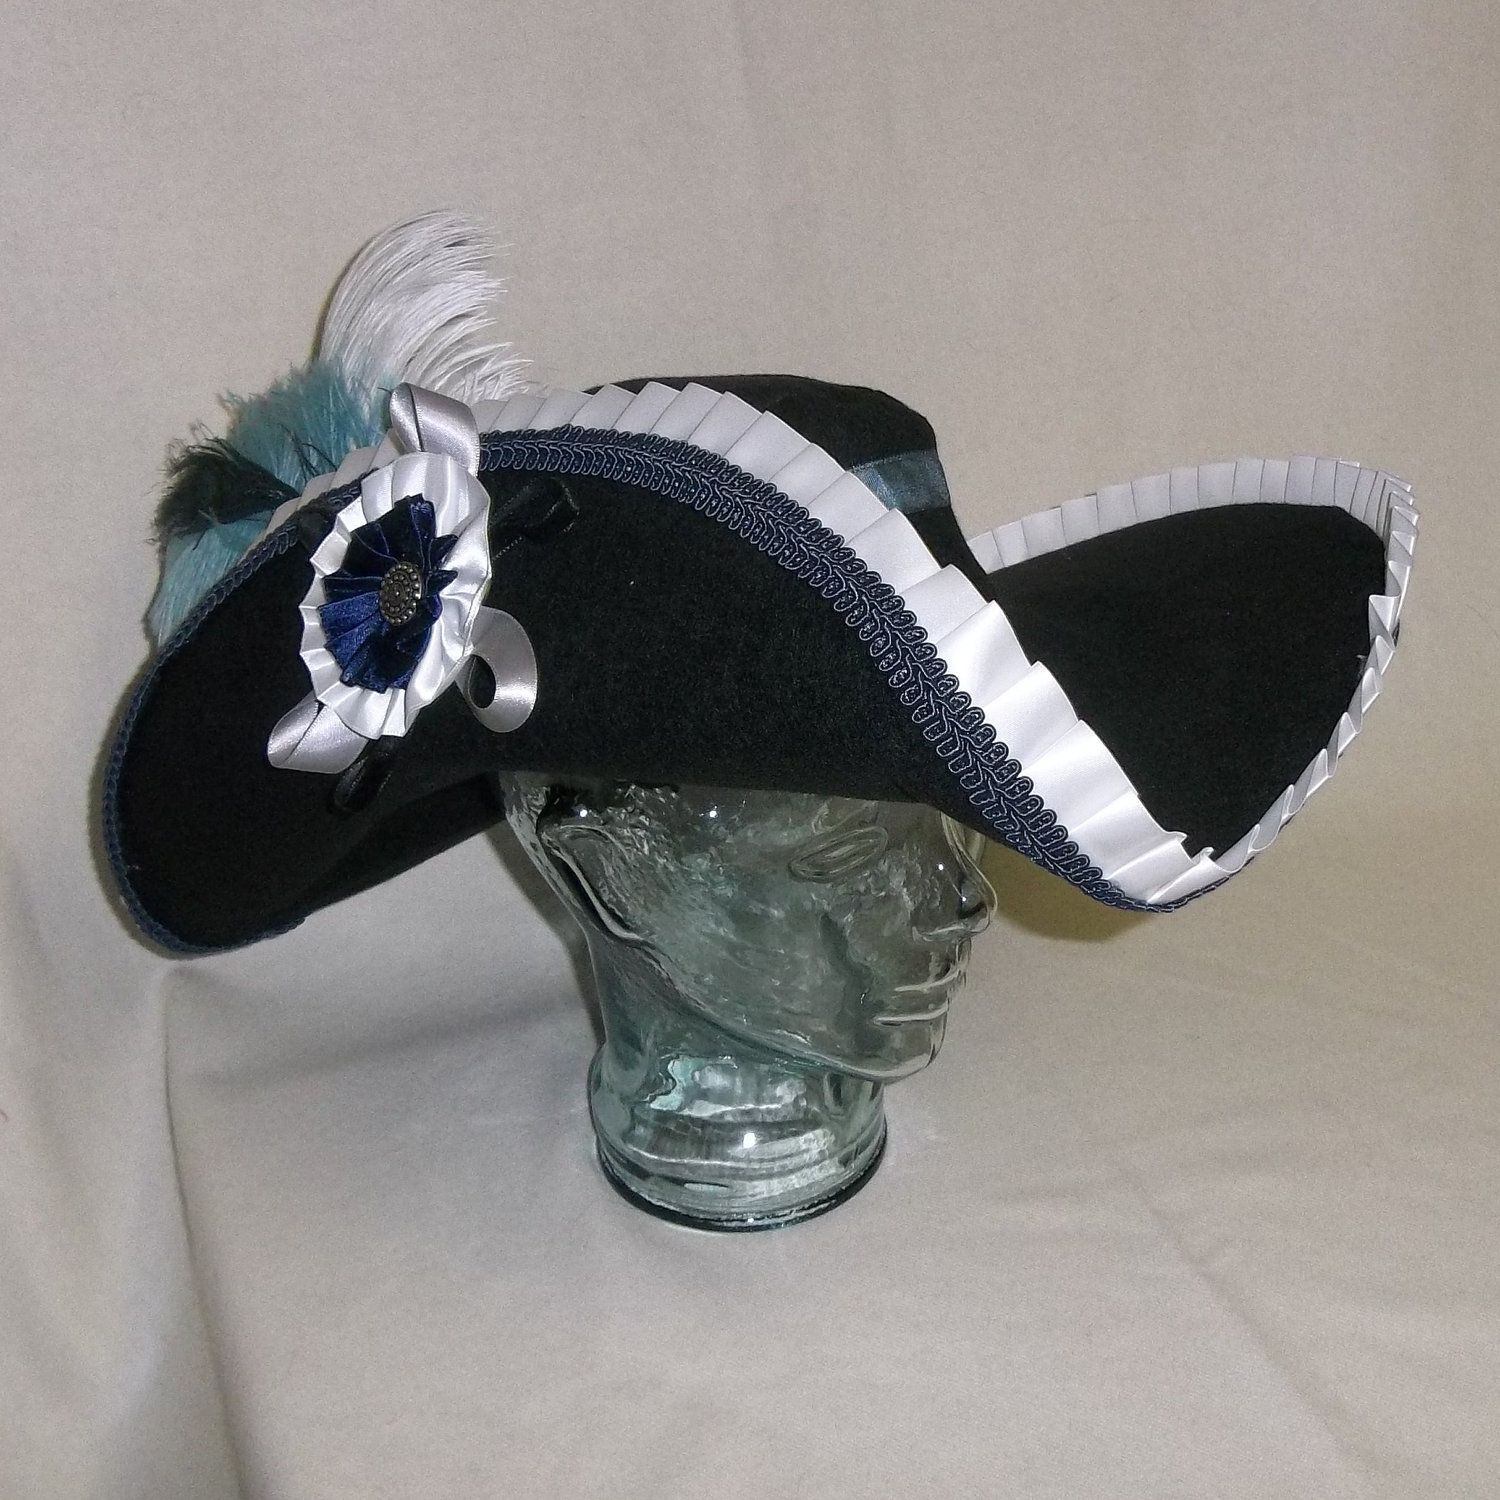 793a61f7111 Deluxe Musketeer Hat- Cavalier Style with Blue and White Trim and Feathers